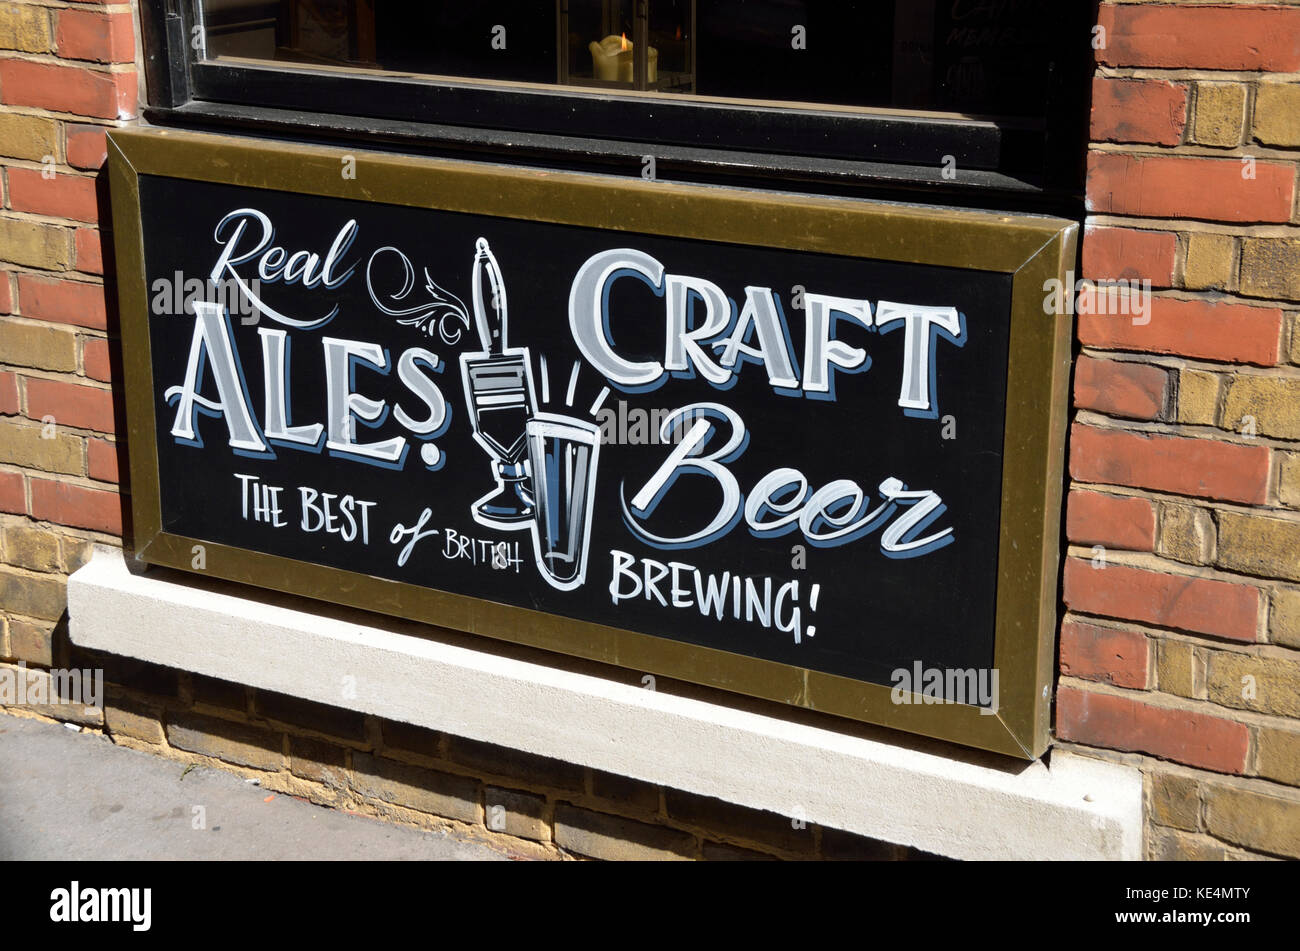 Real Craft Ales and Beer sign outside a pub, London, UK. Stock Photo